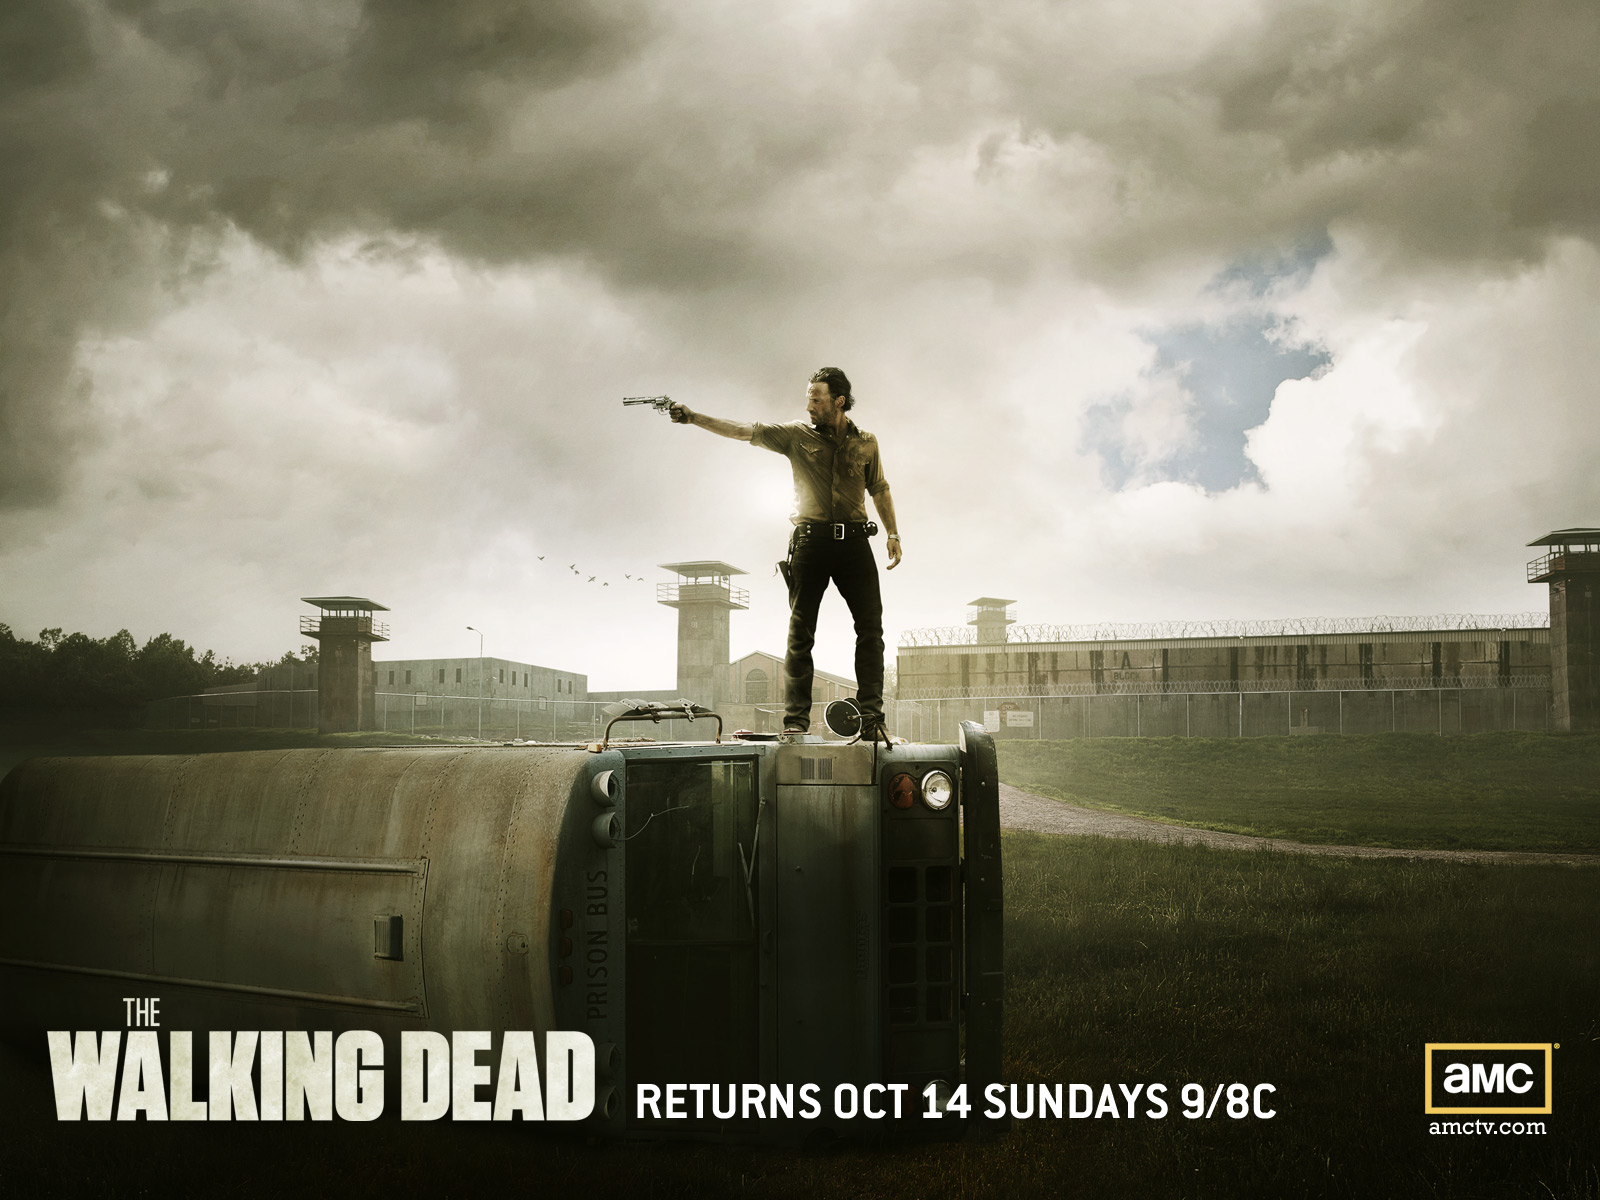 the walking dead images rick grimes hd wallpaper and background